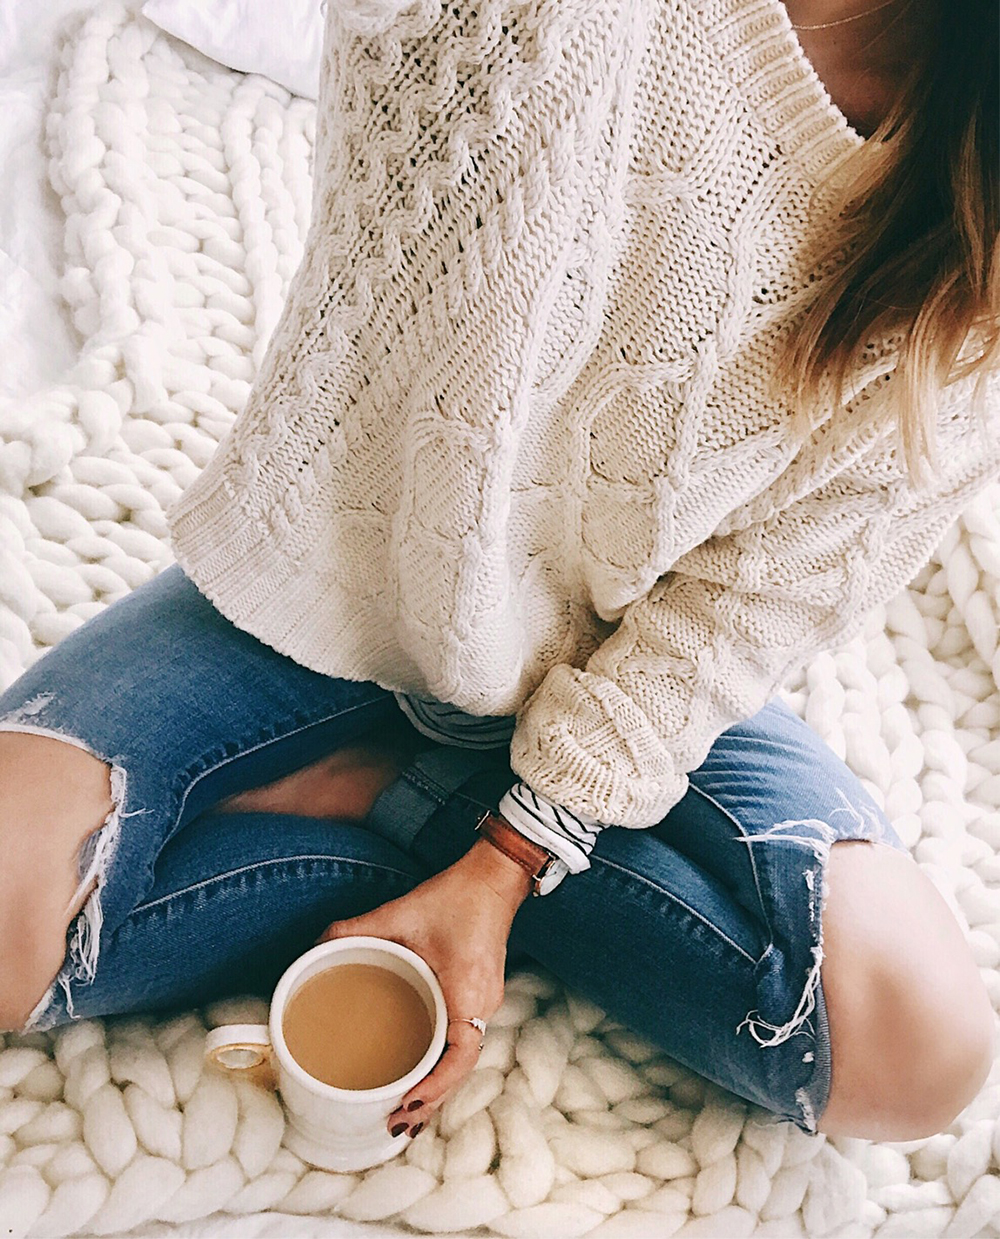 livvyland-blog-olivia-watson-fall-outfit-cableknit-sweater-layers-striped-tee-chunky-knit-throw-blanket